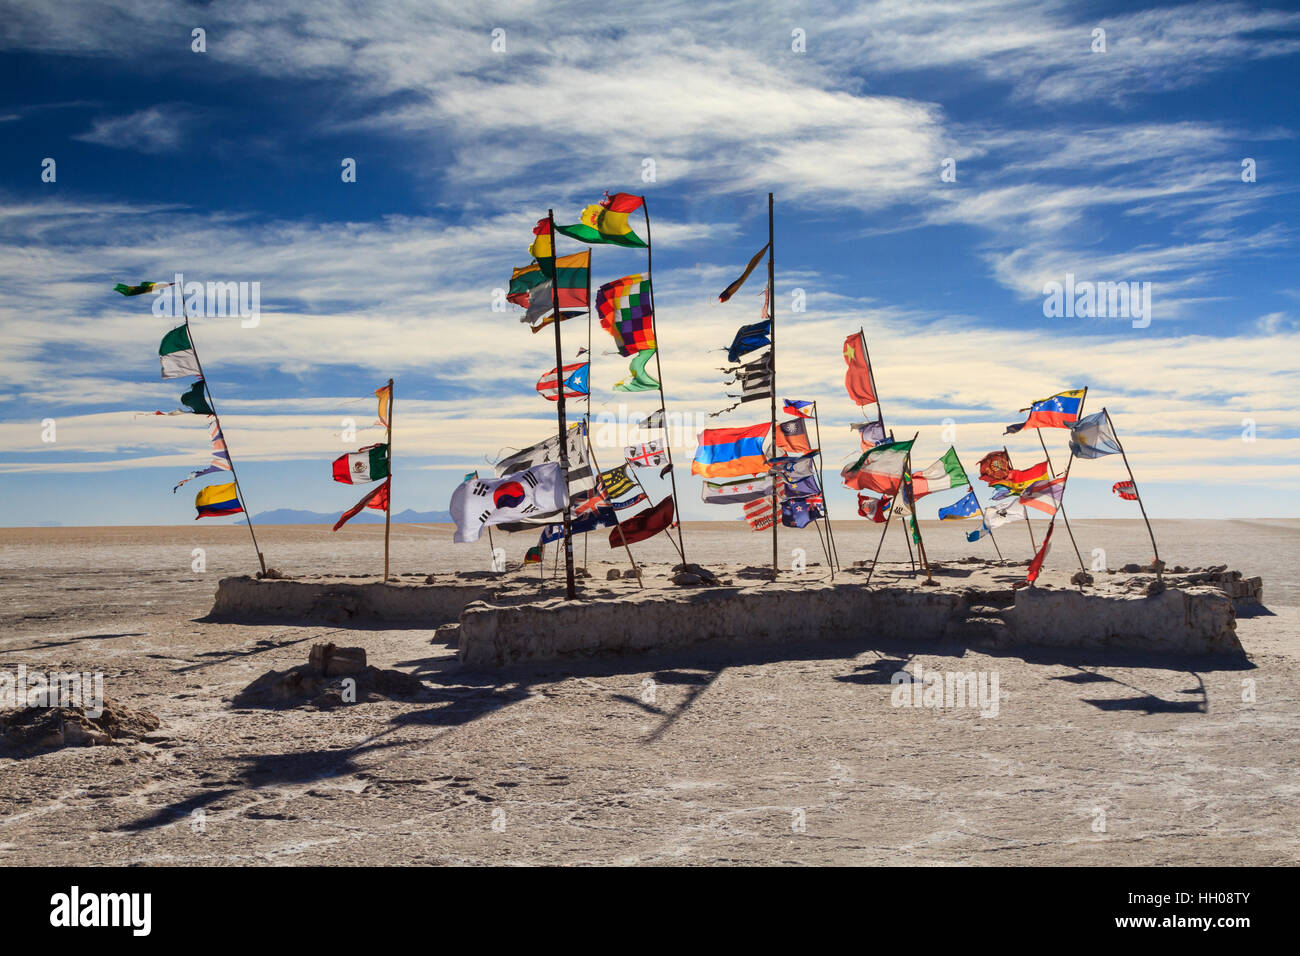 Flags at the Salar de Uyuni, Altiplano, Bolivia - Stock Image